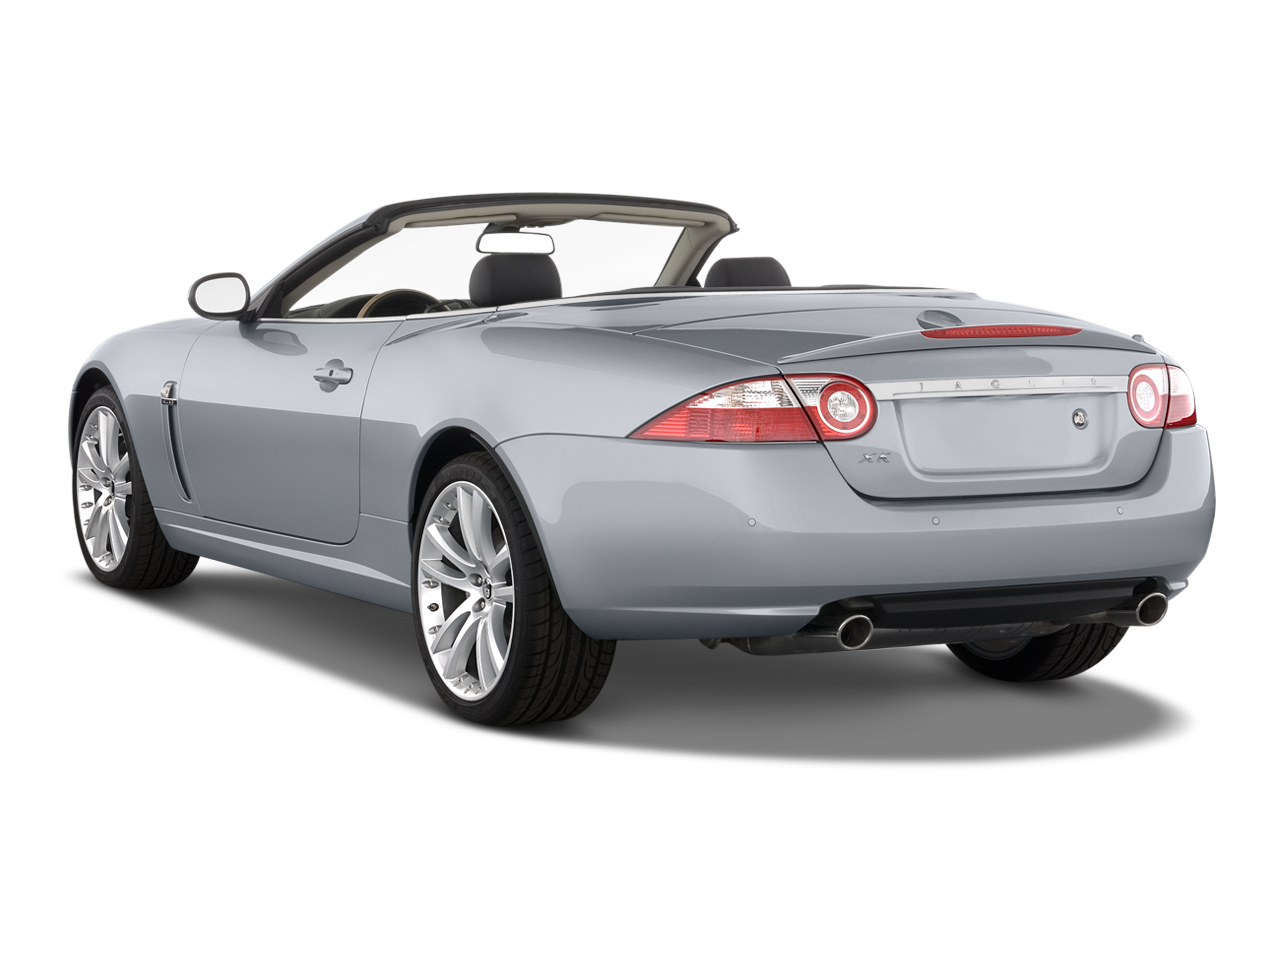 2008 jaguar xkr convertible jaguar luxury convertible. Black Bedroom Furniture Sets. Home Design Ideas